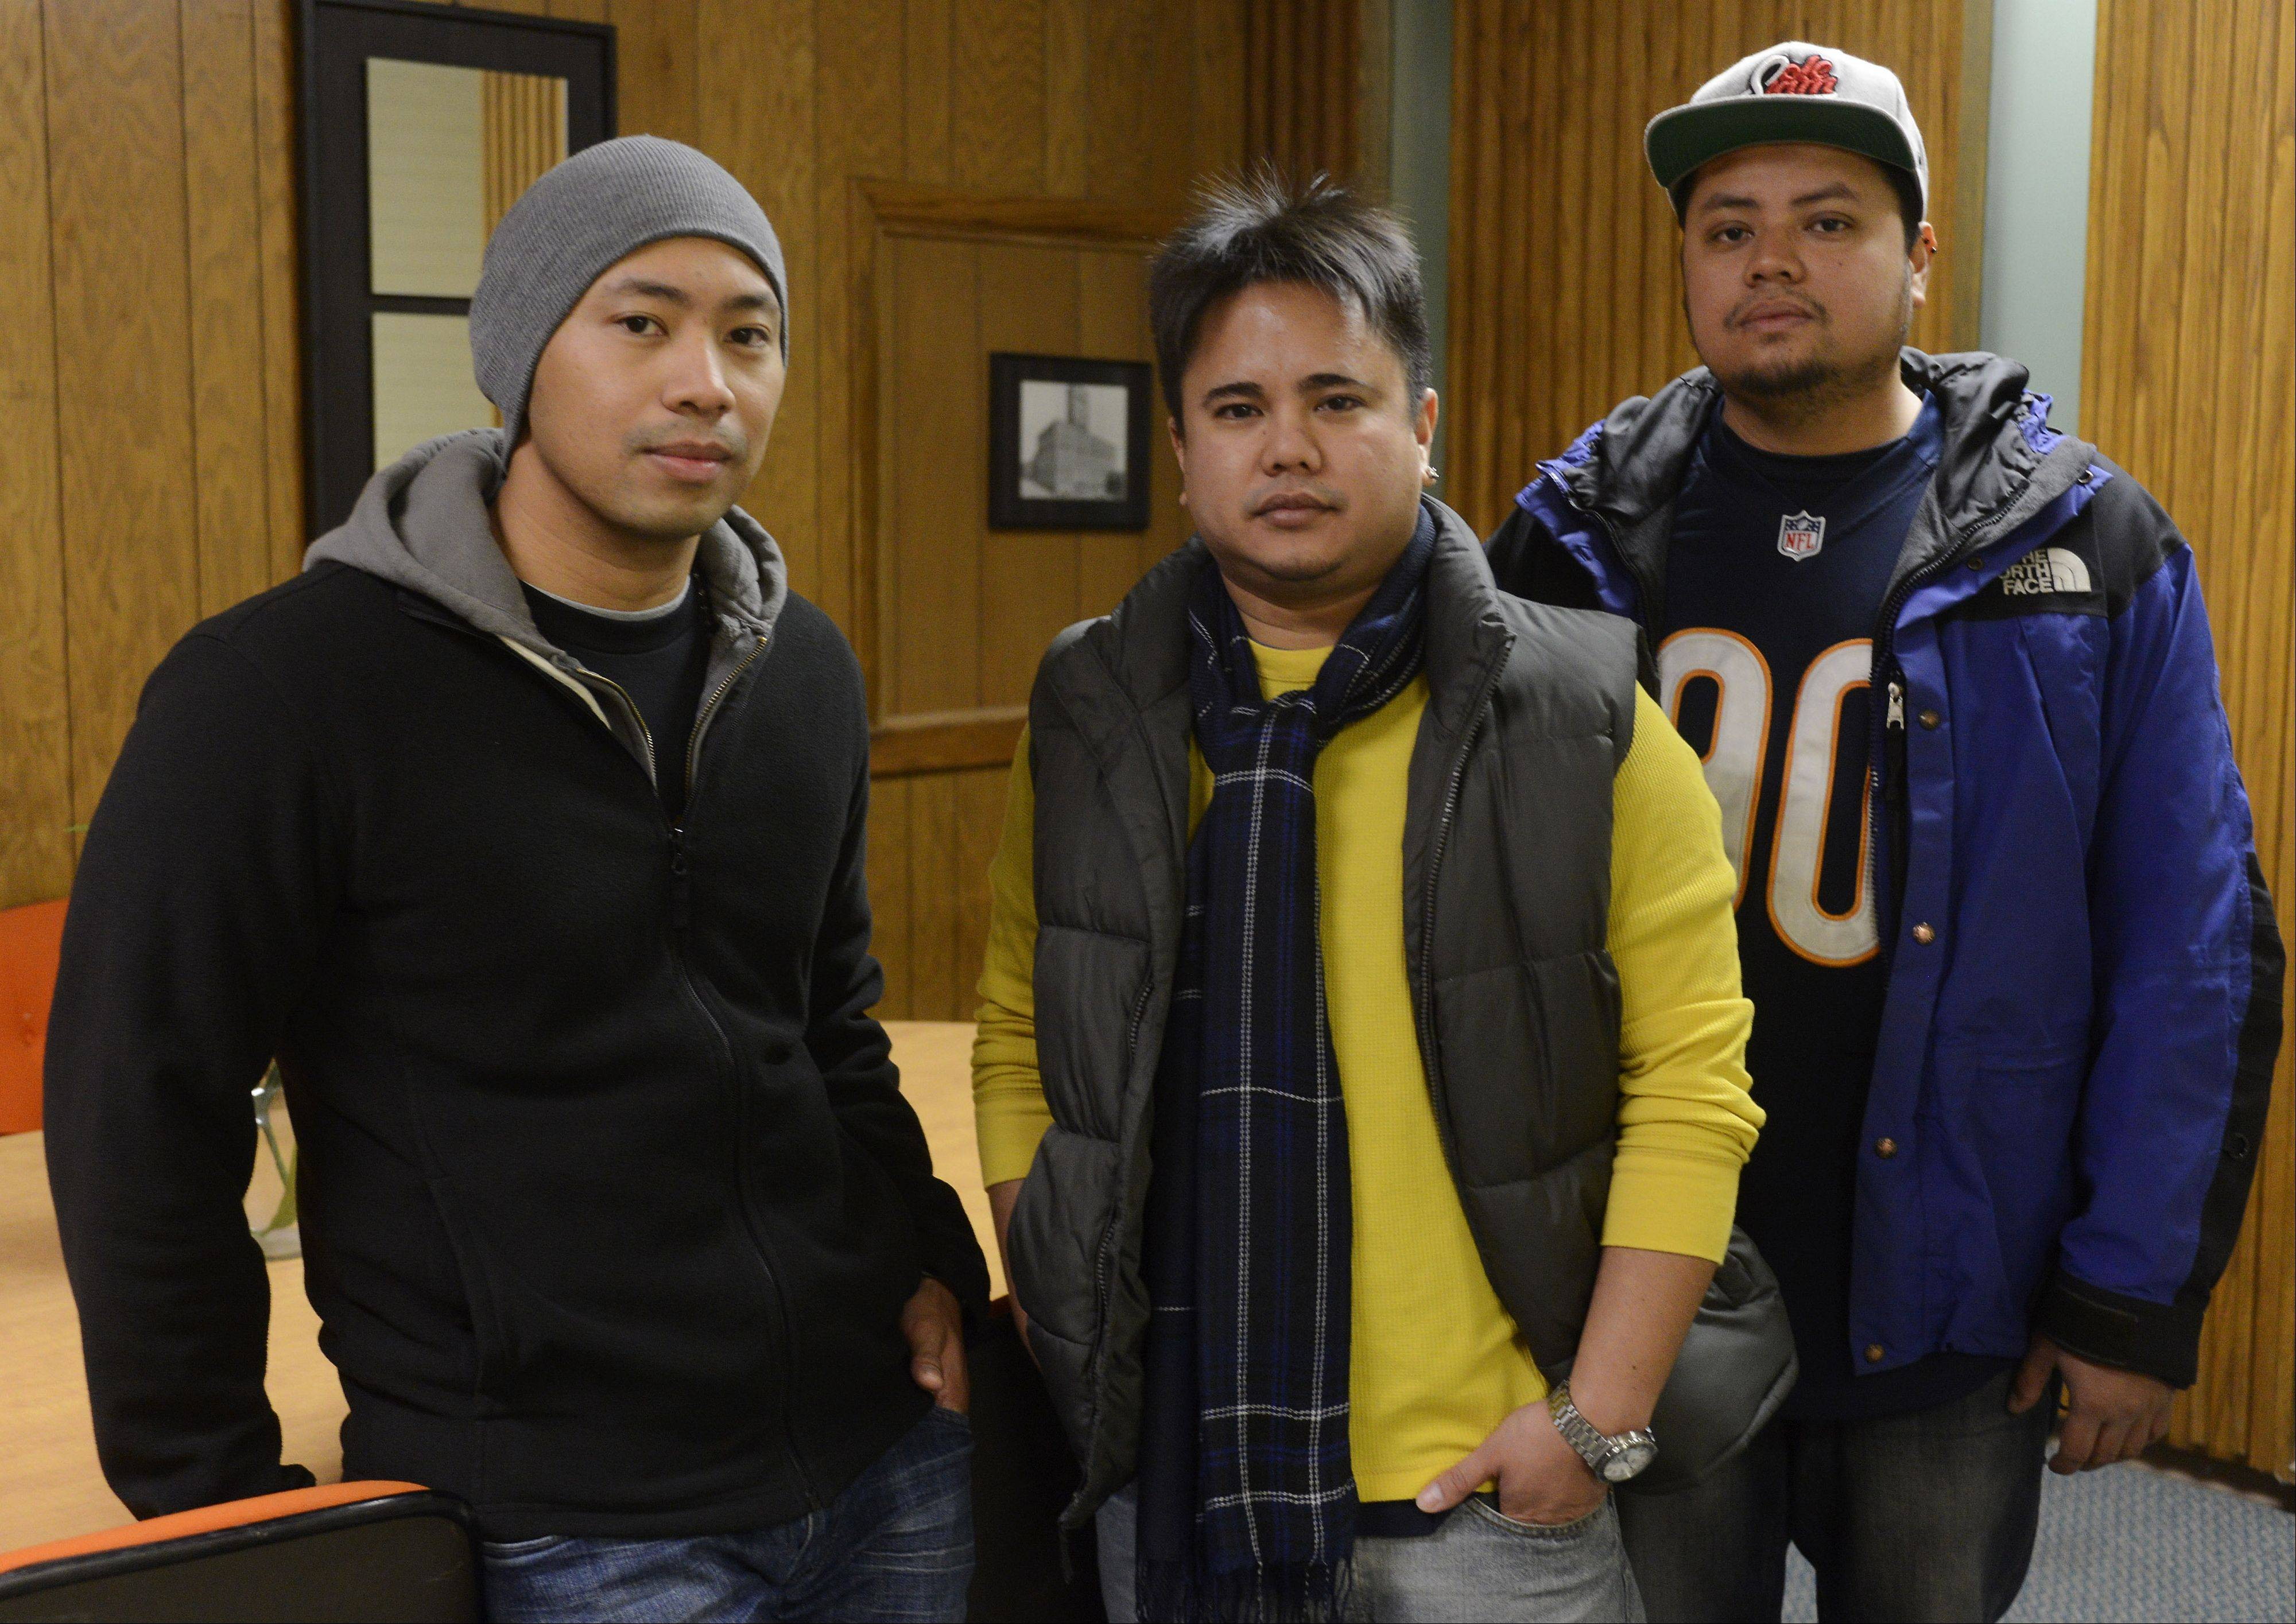 Dante Parado, left, with the help of friends Jorel Santos, middle, and Justin Fernandez, has organized a fundraising walk/run that will benefit the relief efforts going on in the Philippines in the aftermath of Typhoon Haiyan.